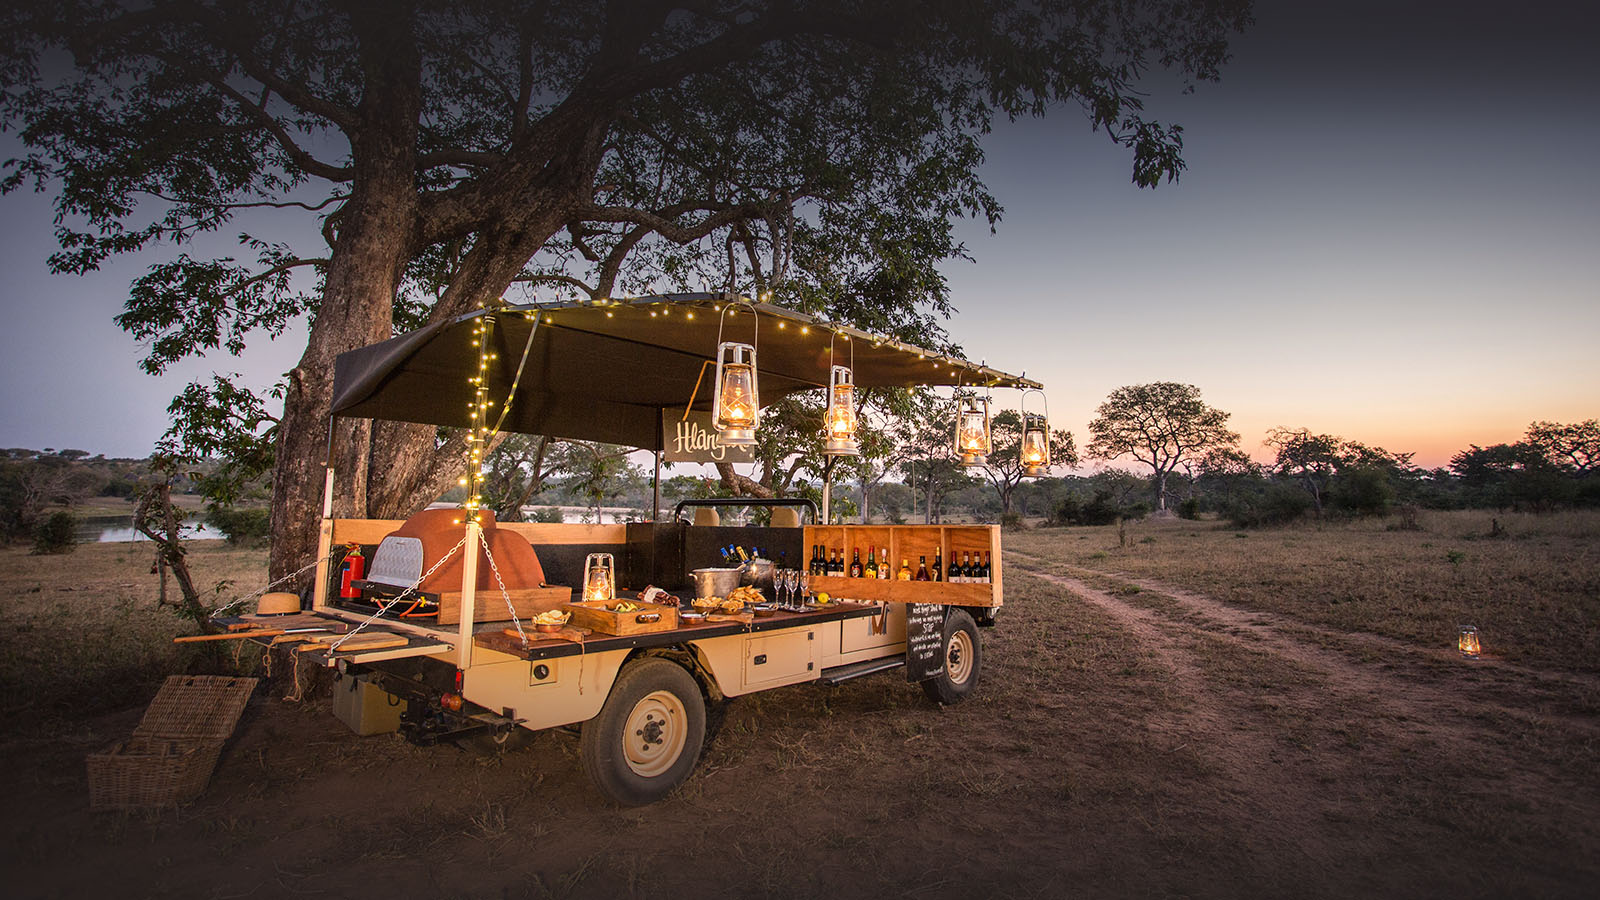 chitwa chitwa sabi-sands-lodges-greater-kruger-zambia-in-style-south-africa-prime-game-viewing-pizza-truck